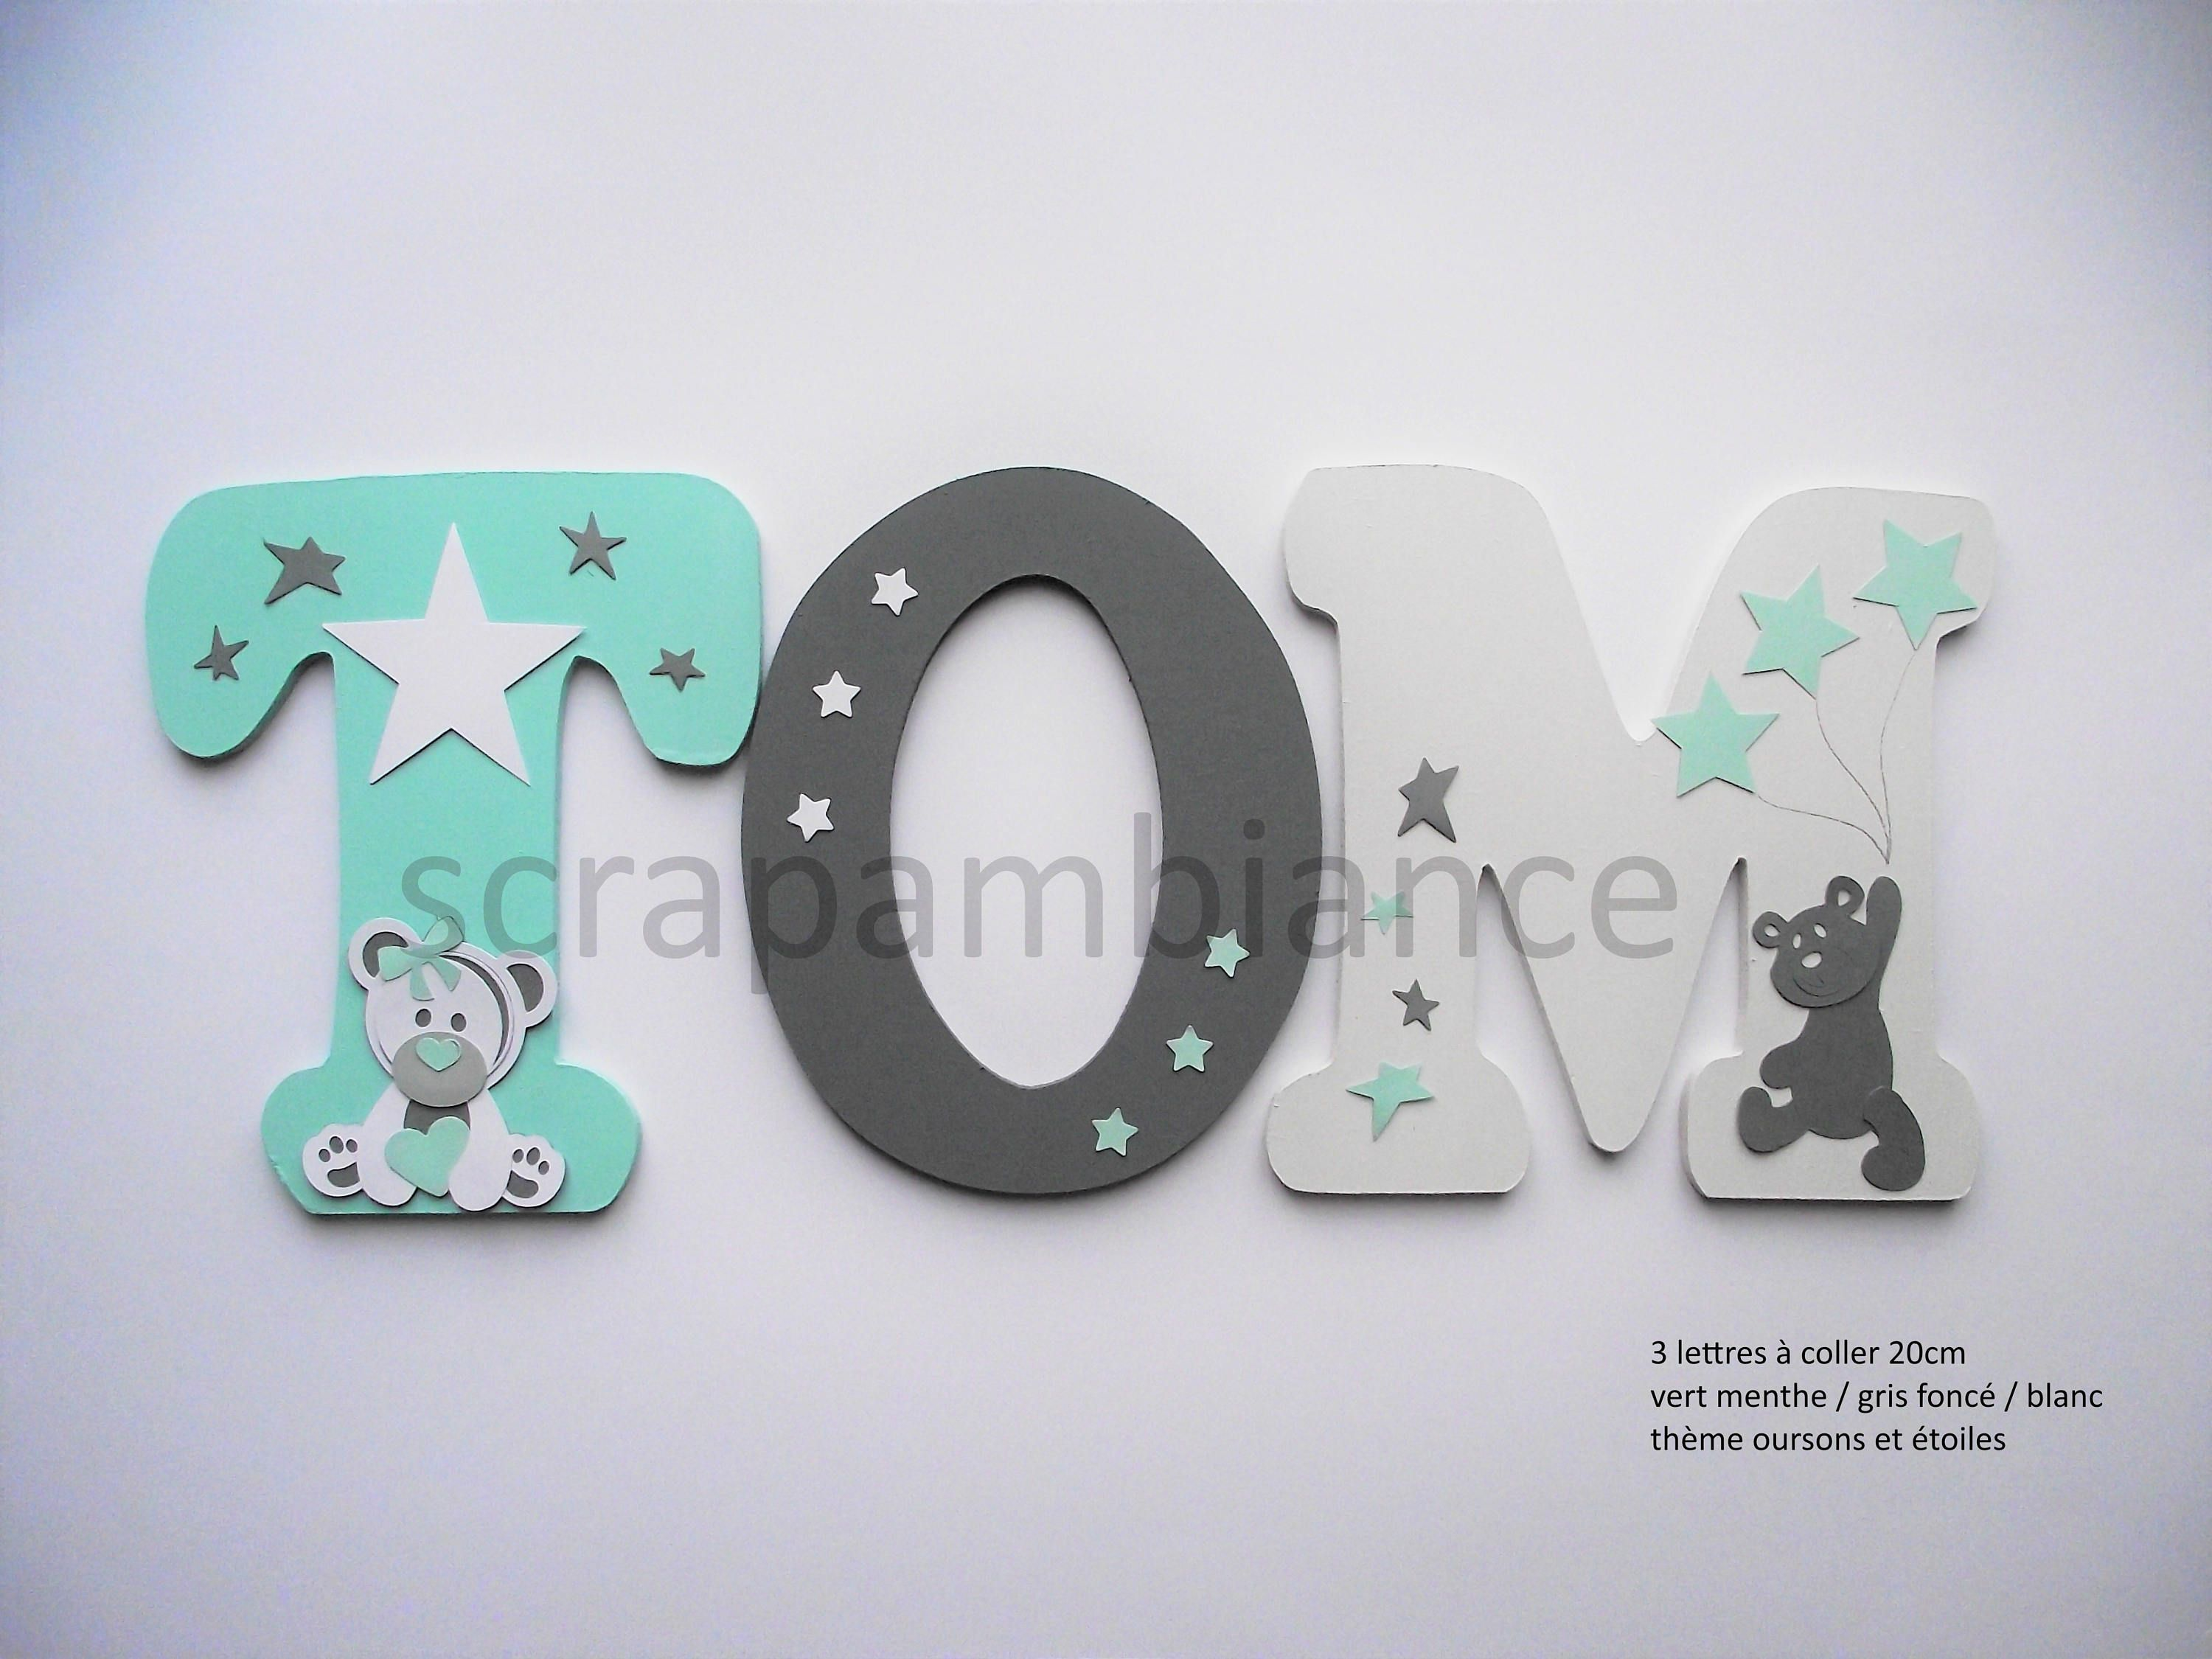 Wood letter name / child and baby room decoration / wooden name